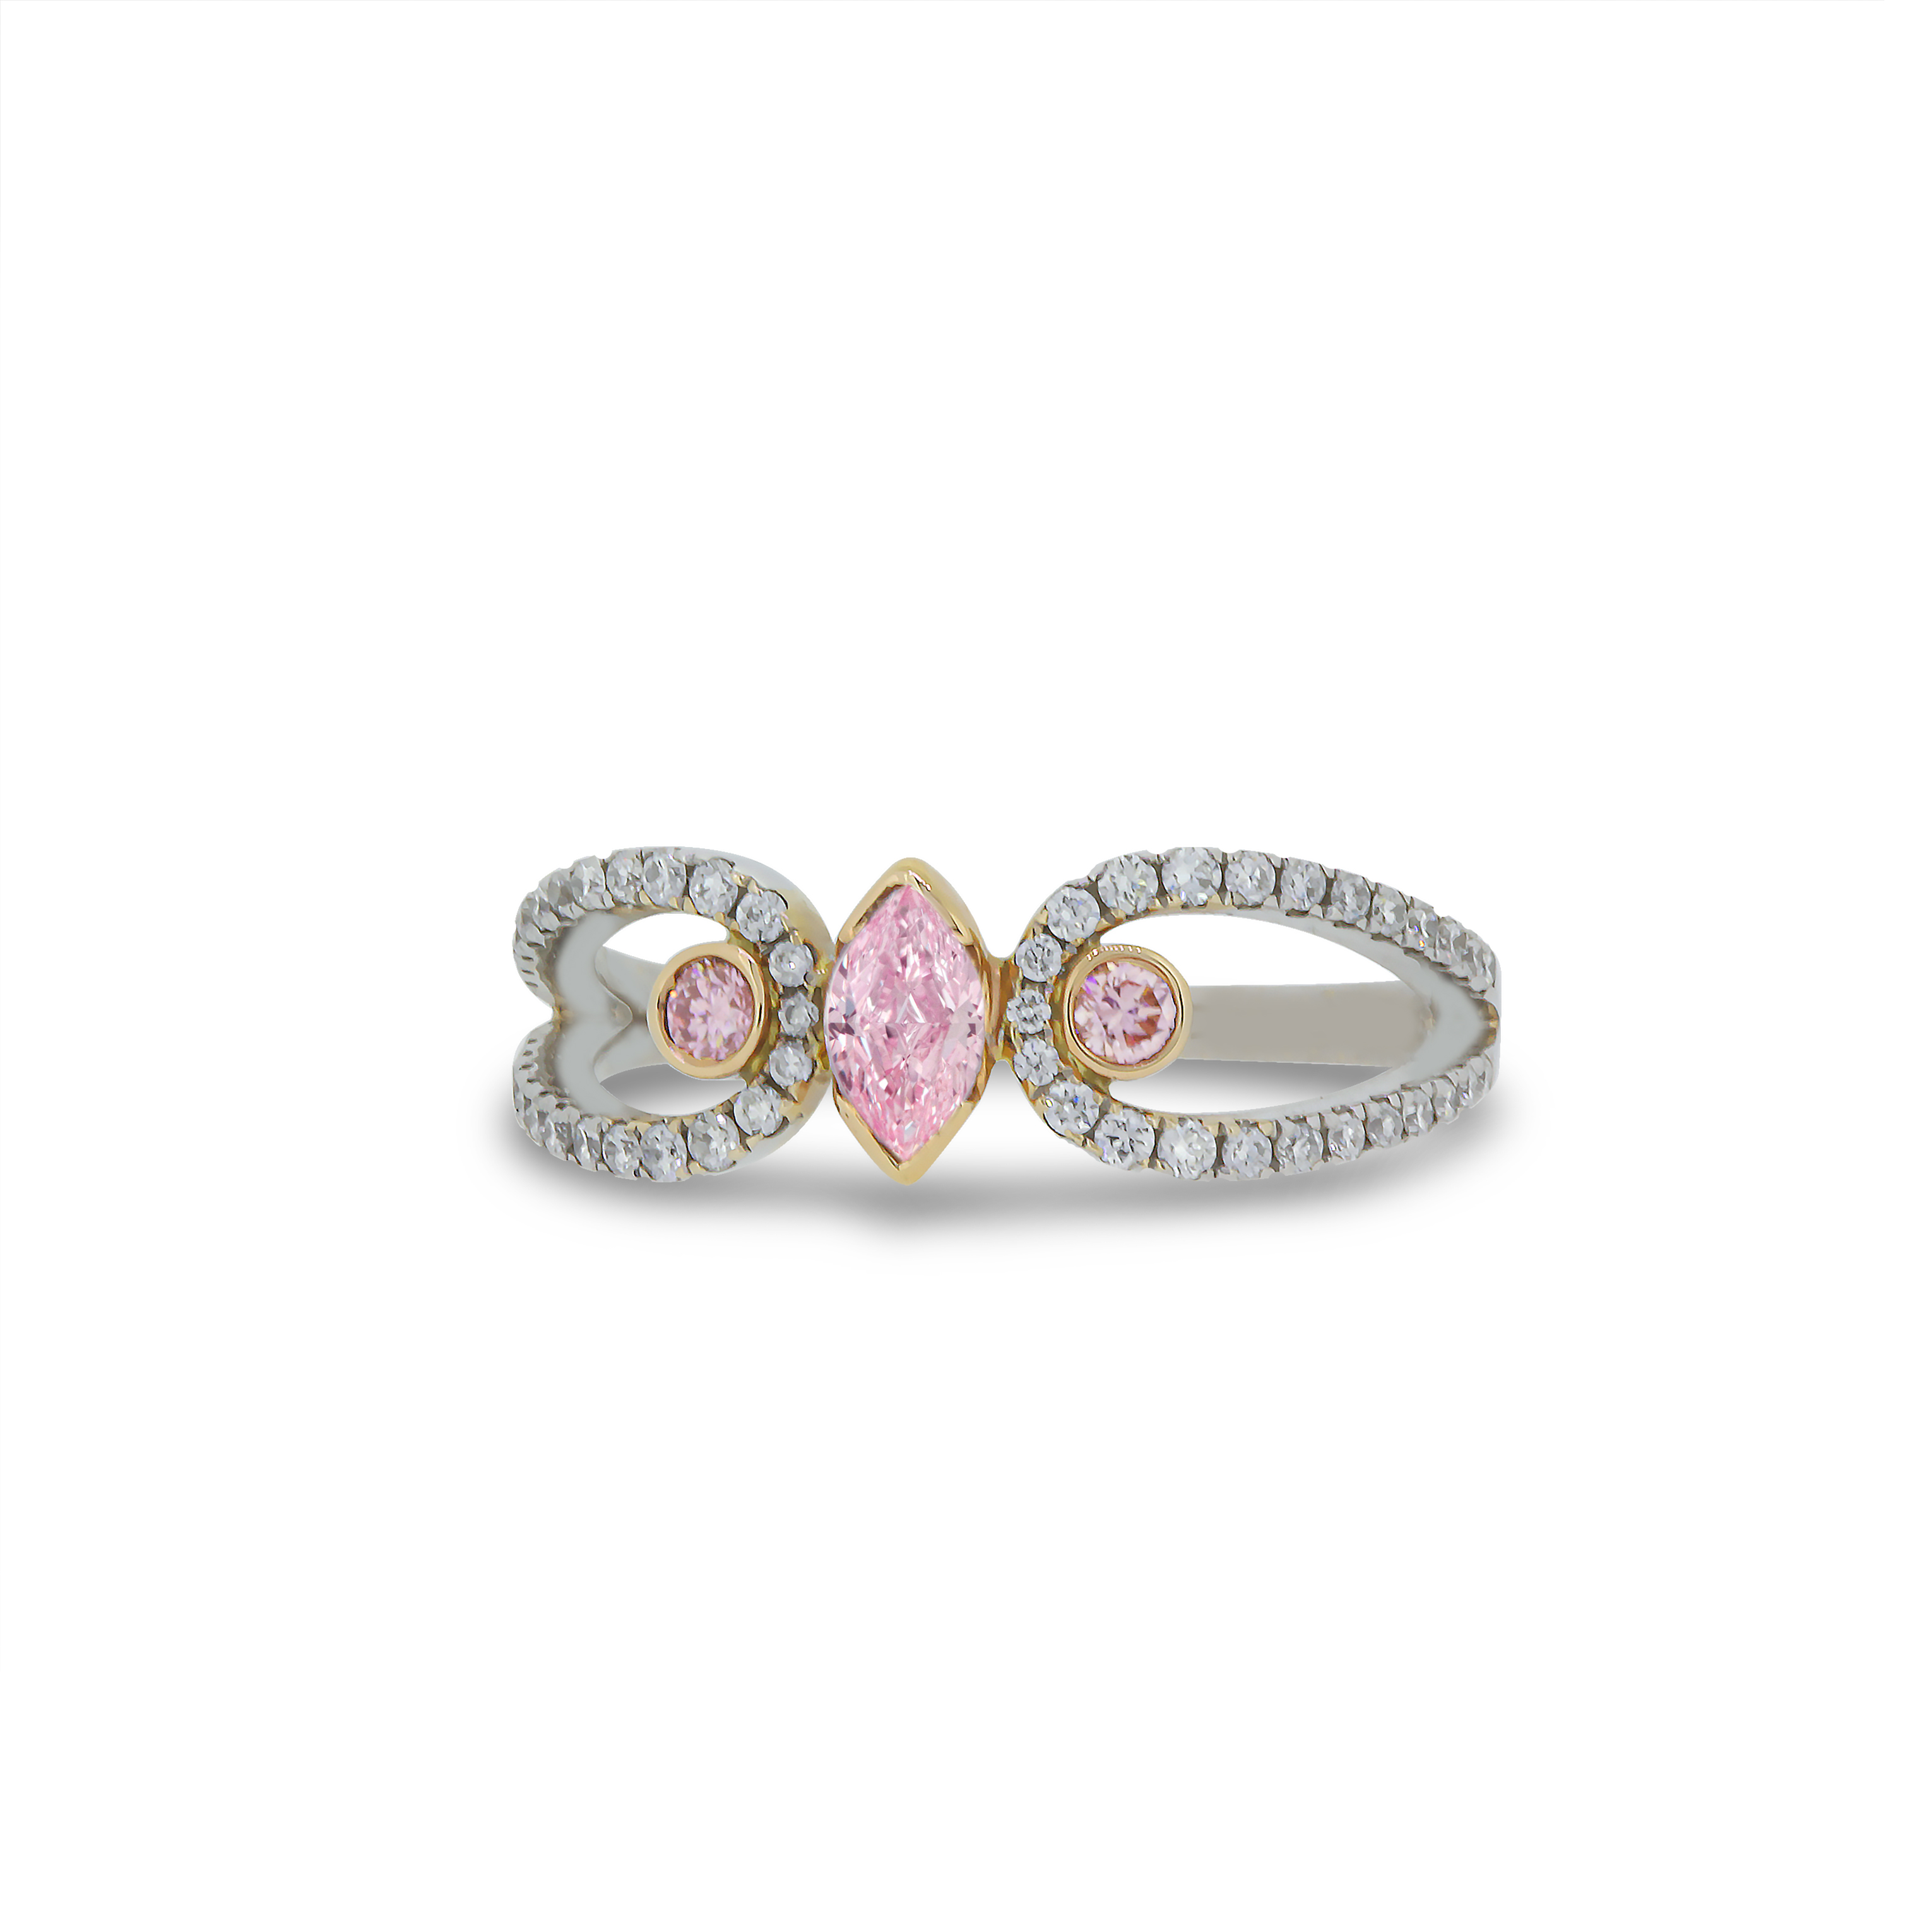 Marquise Cut Fancy Pink Diamond Ring in 18k White and Rose Gold